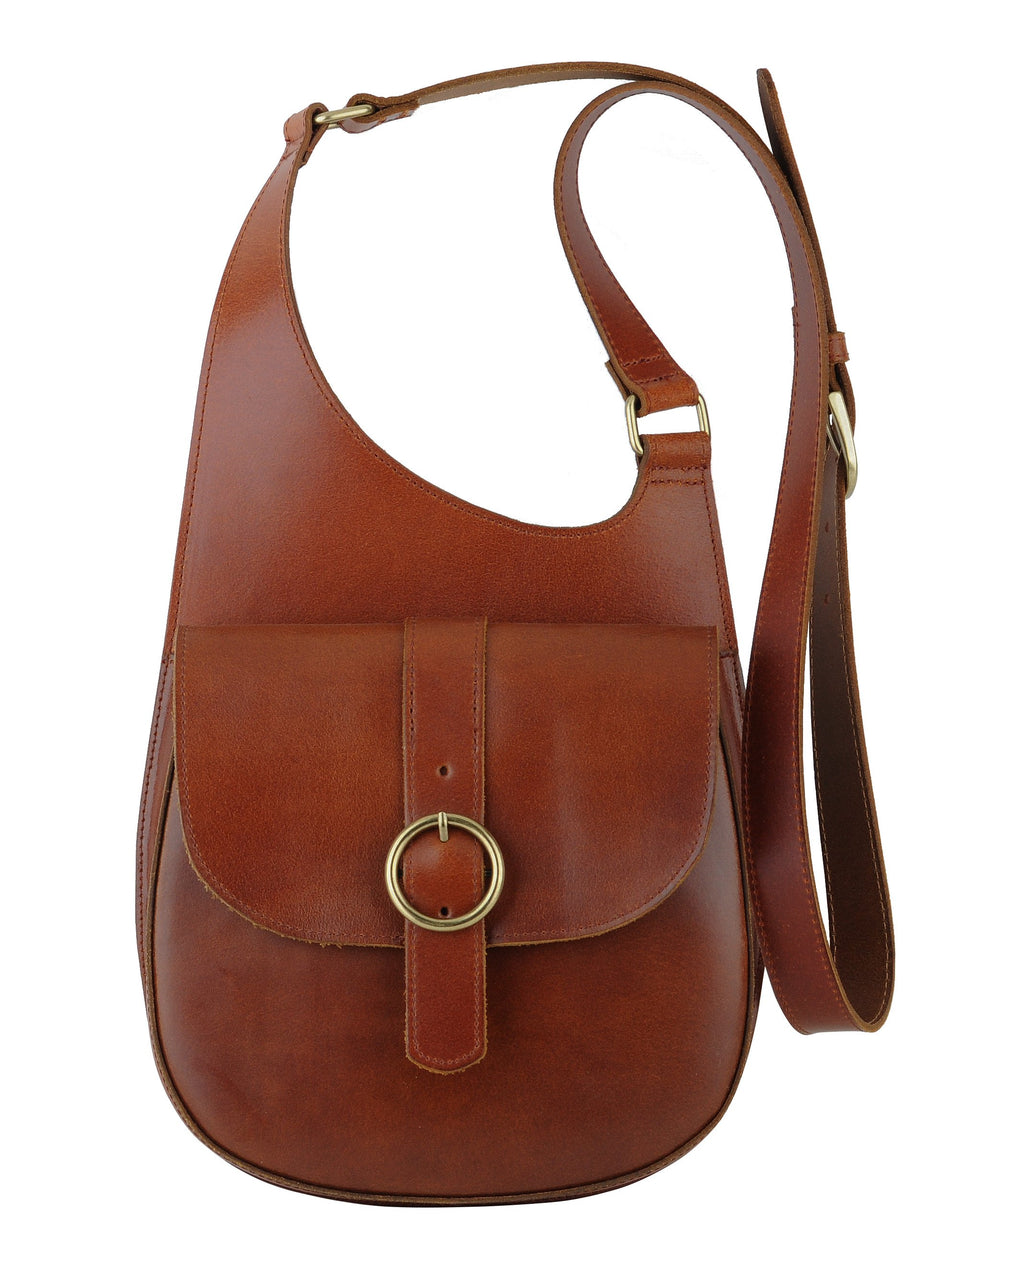 Most Wanted - Classic Saddle Bag Crossbody Tan